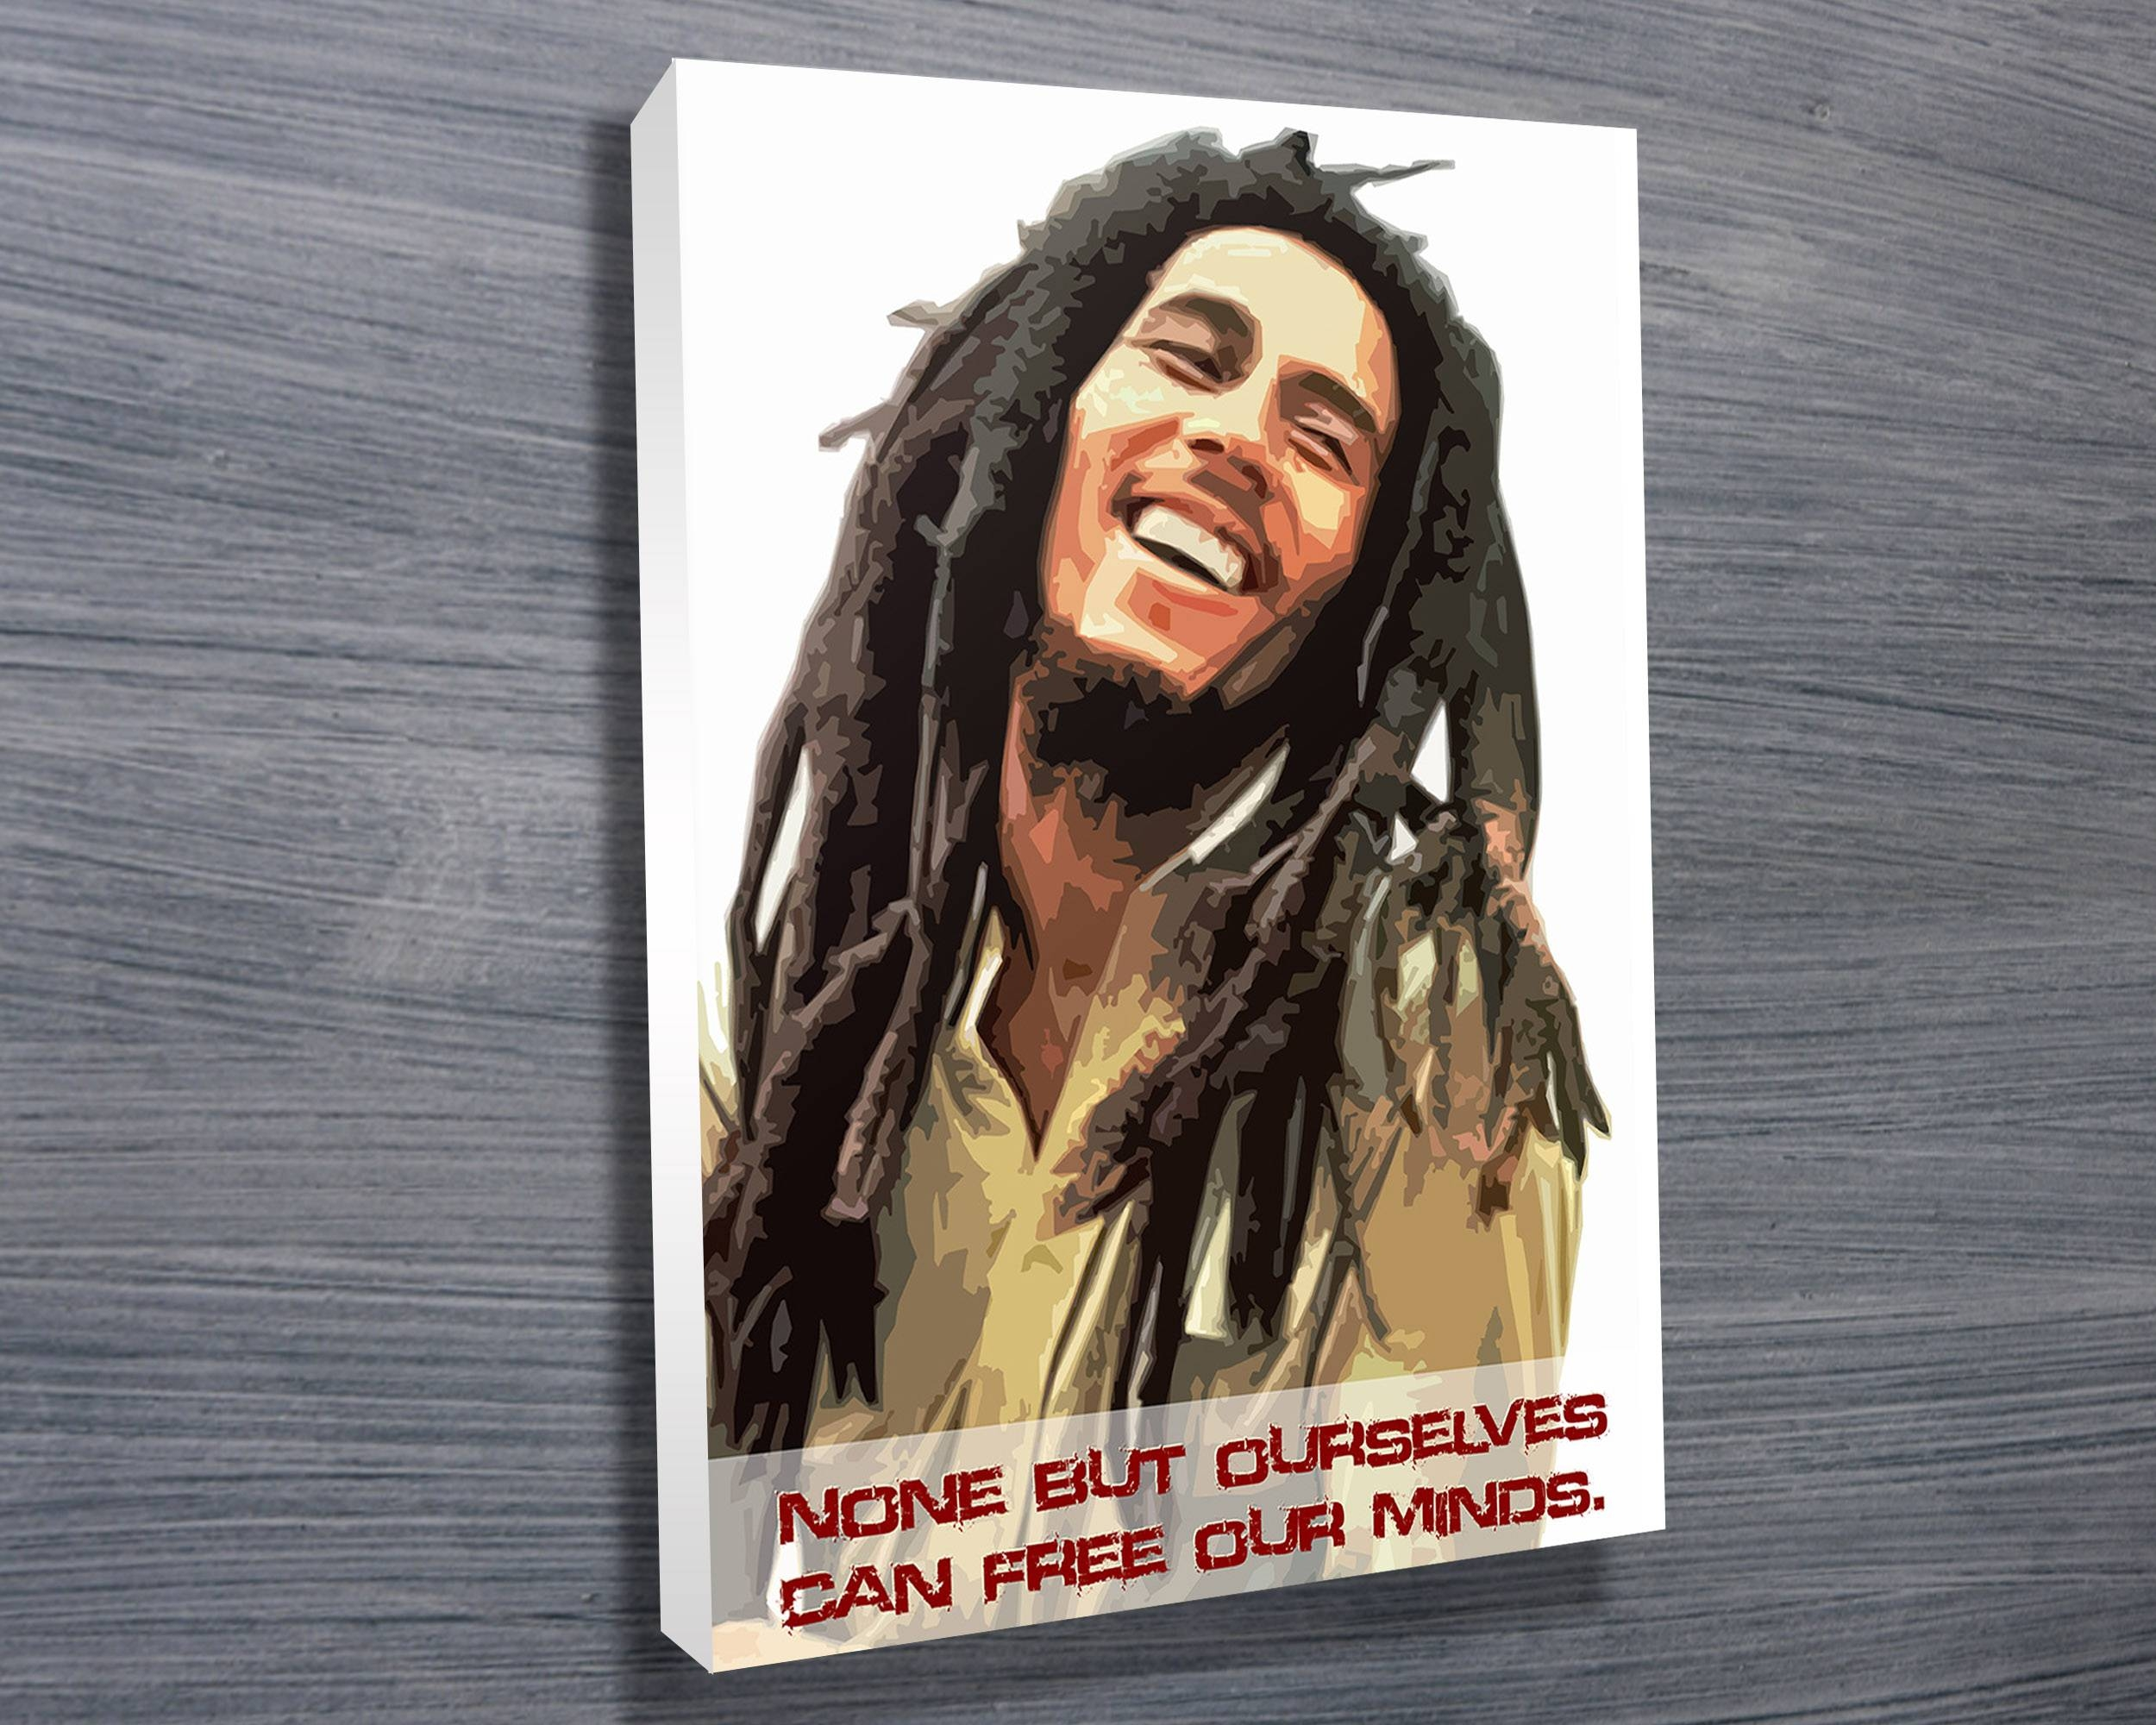 Bob Marley Art – Canvas Prints Australia Within Most Current Bob Marley Canvas Wall Art (Gallery 2 of 25)